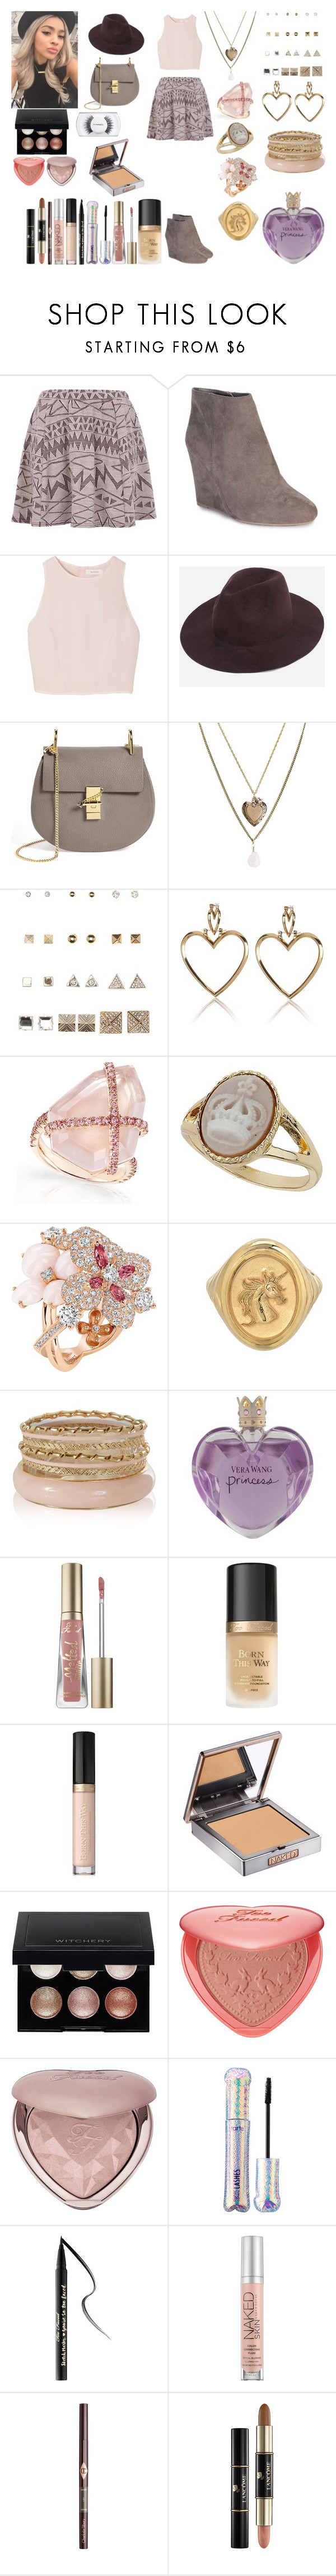 """Untitled #873"" by asiebenthaler ❤ liked on Polyvore featuring River Island, Bamboo, SemSem, Chloé, Aéropostale, Charlotte Russe, Miss Selfridge, Chaumet, Vera Wang and Too Faced Cosmetics"